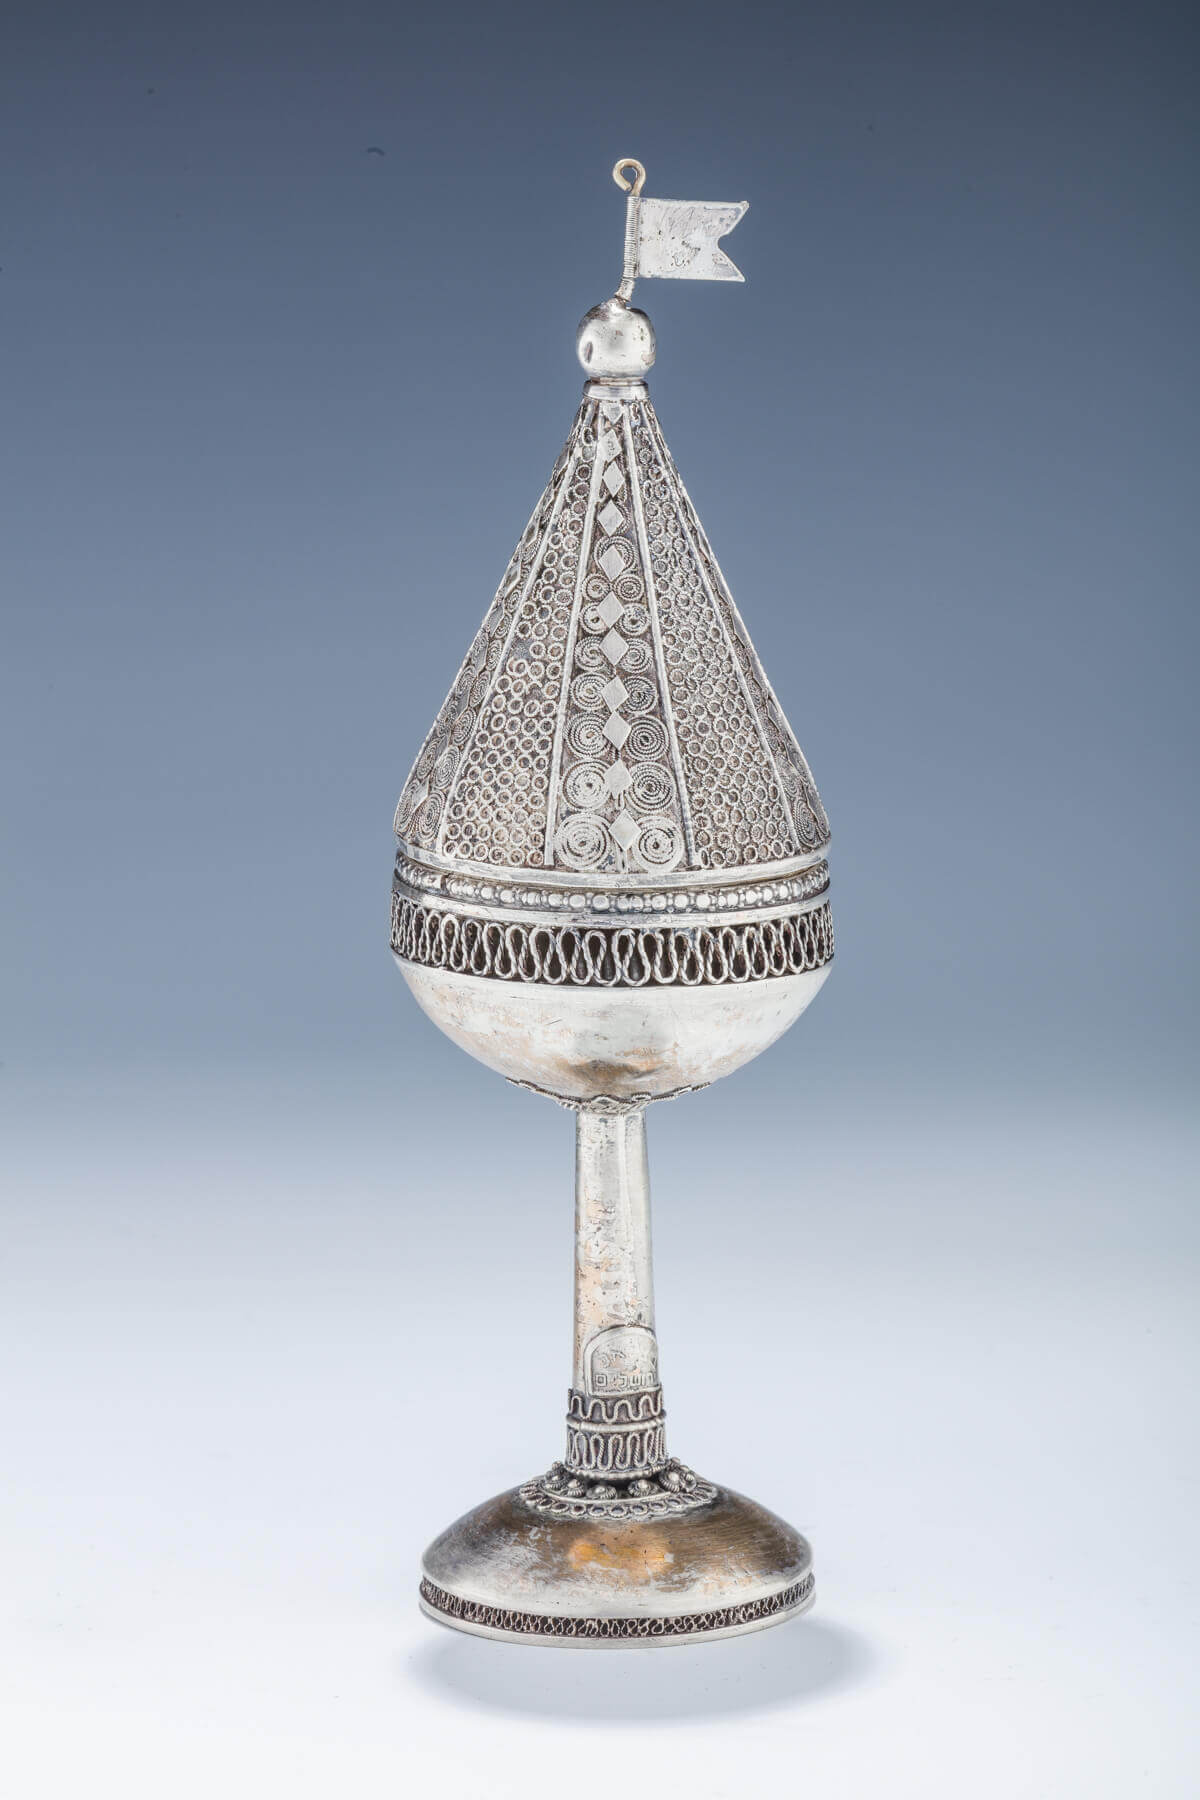 021. A SILVER SPICE TOWER AND TORAH POINTER BY THE BEZALEL SCHOOL